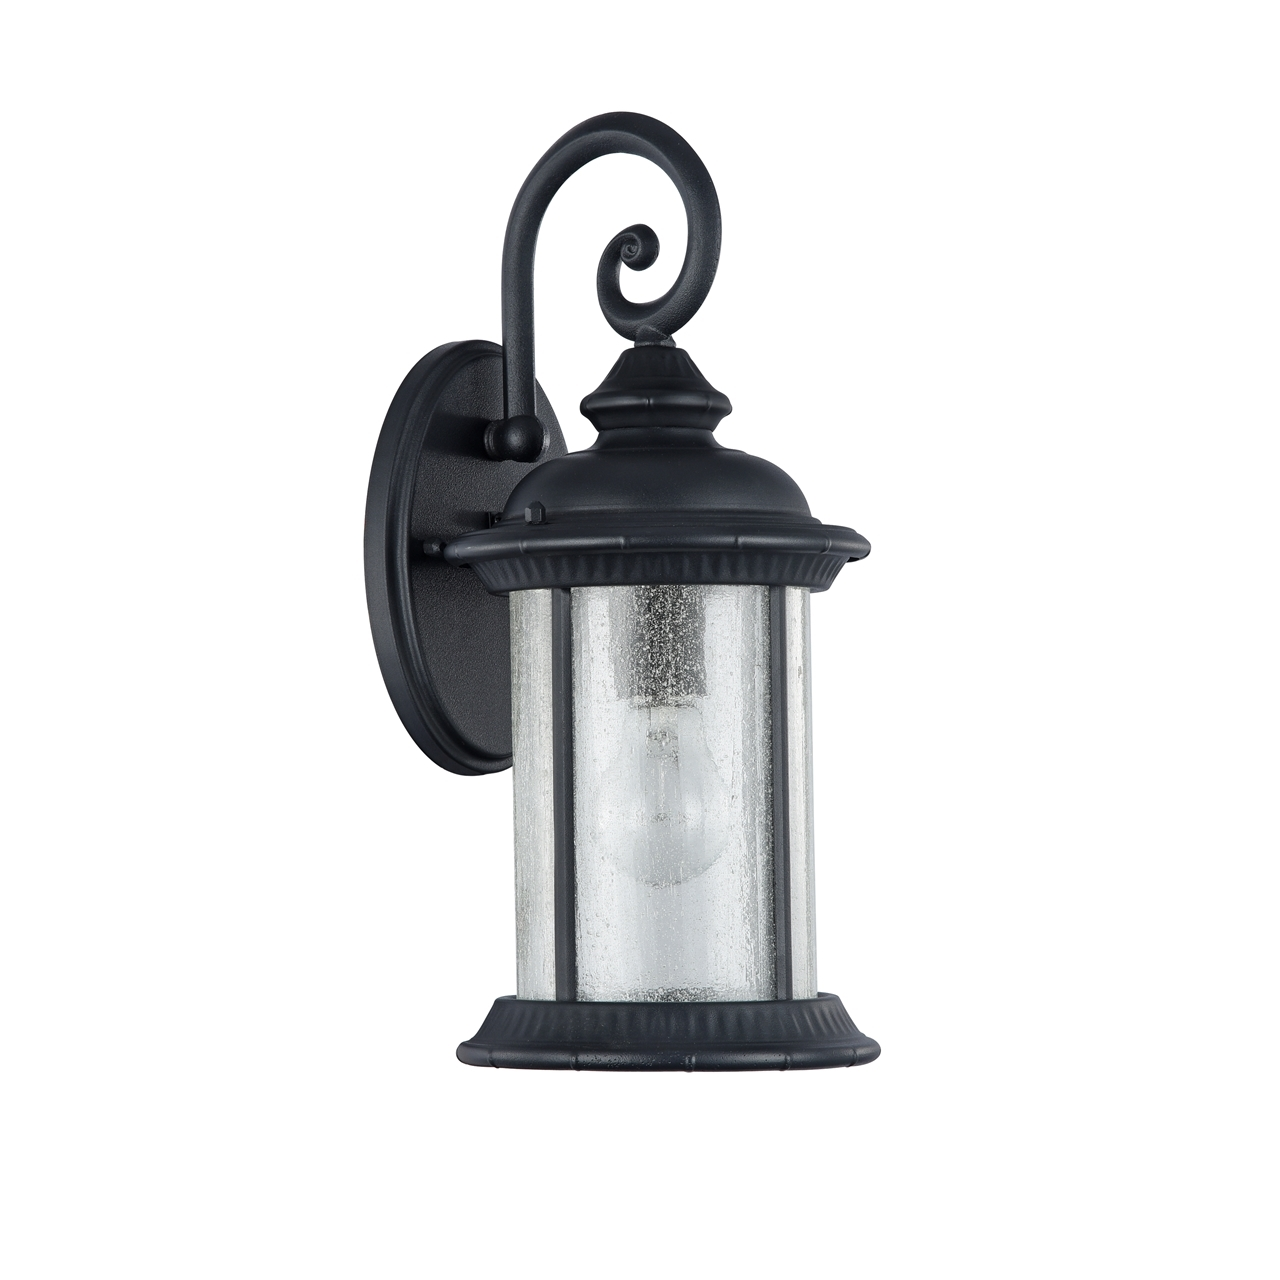 Picture Of Ch22056bk15 Od1 Outdoor Sconce